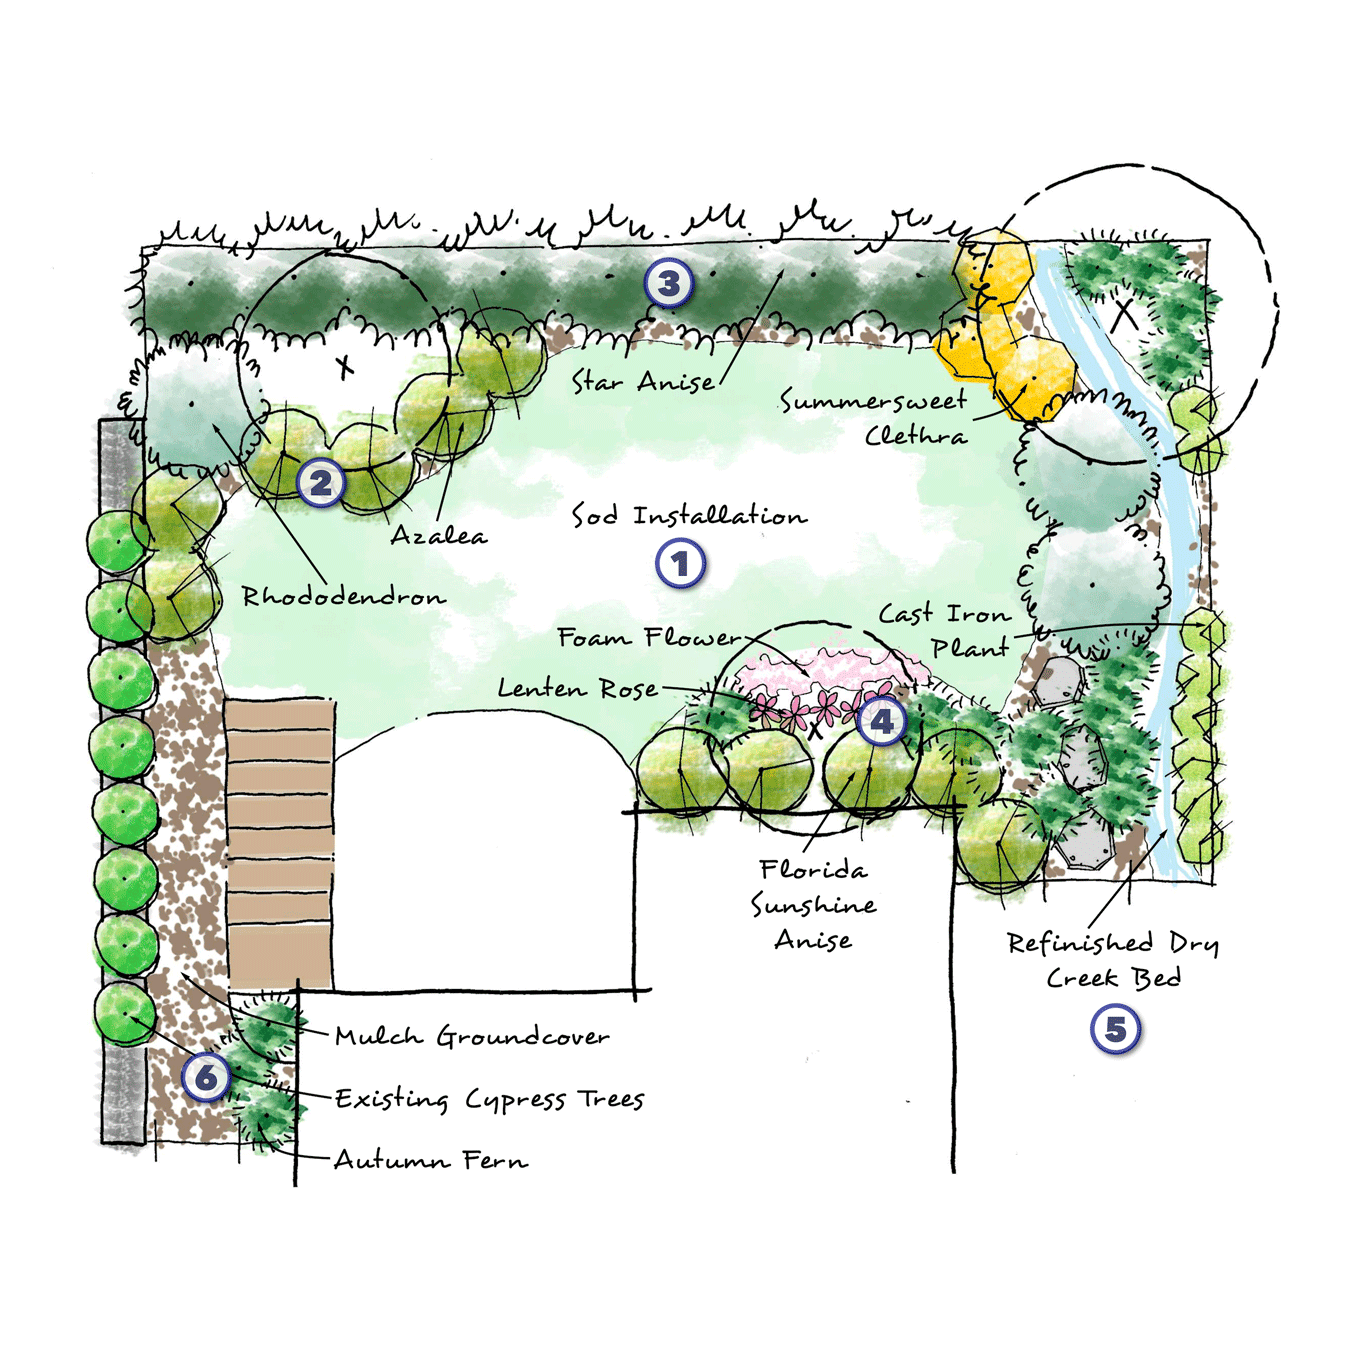 Primary Design - A beautiful full color design that brings your vision to life. This design will give you an idea of the layout, plant selection, pricing estimates, and overall feel of the space.